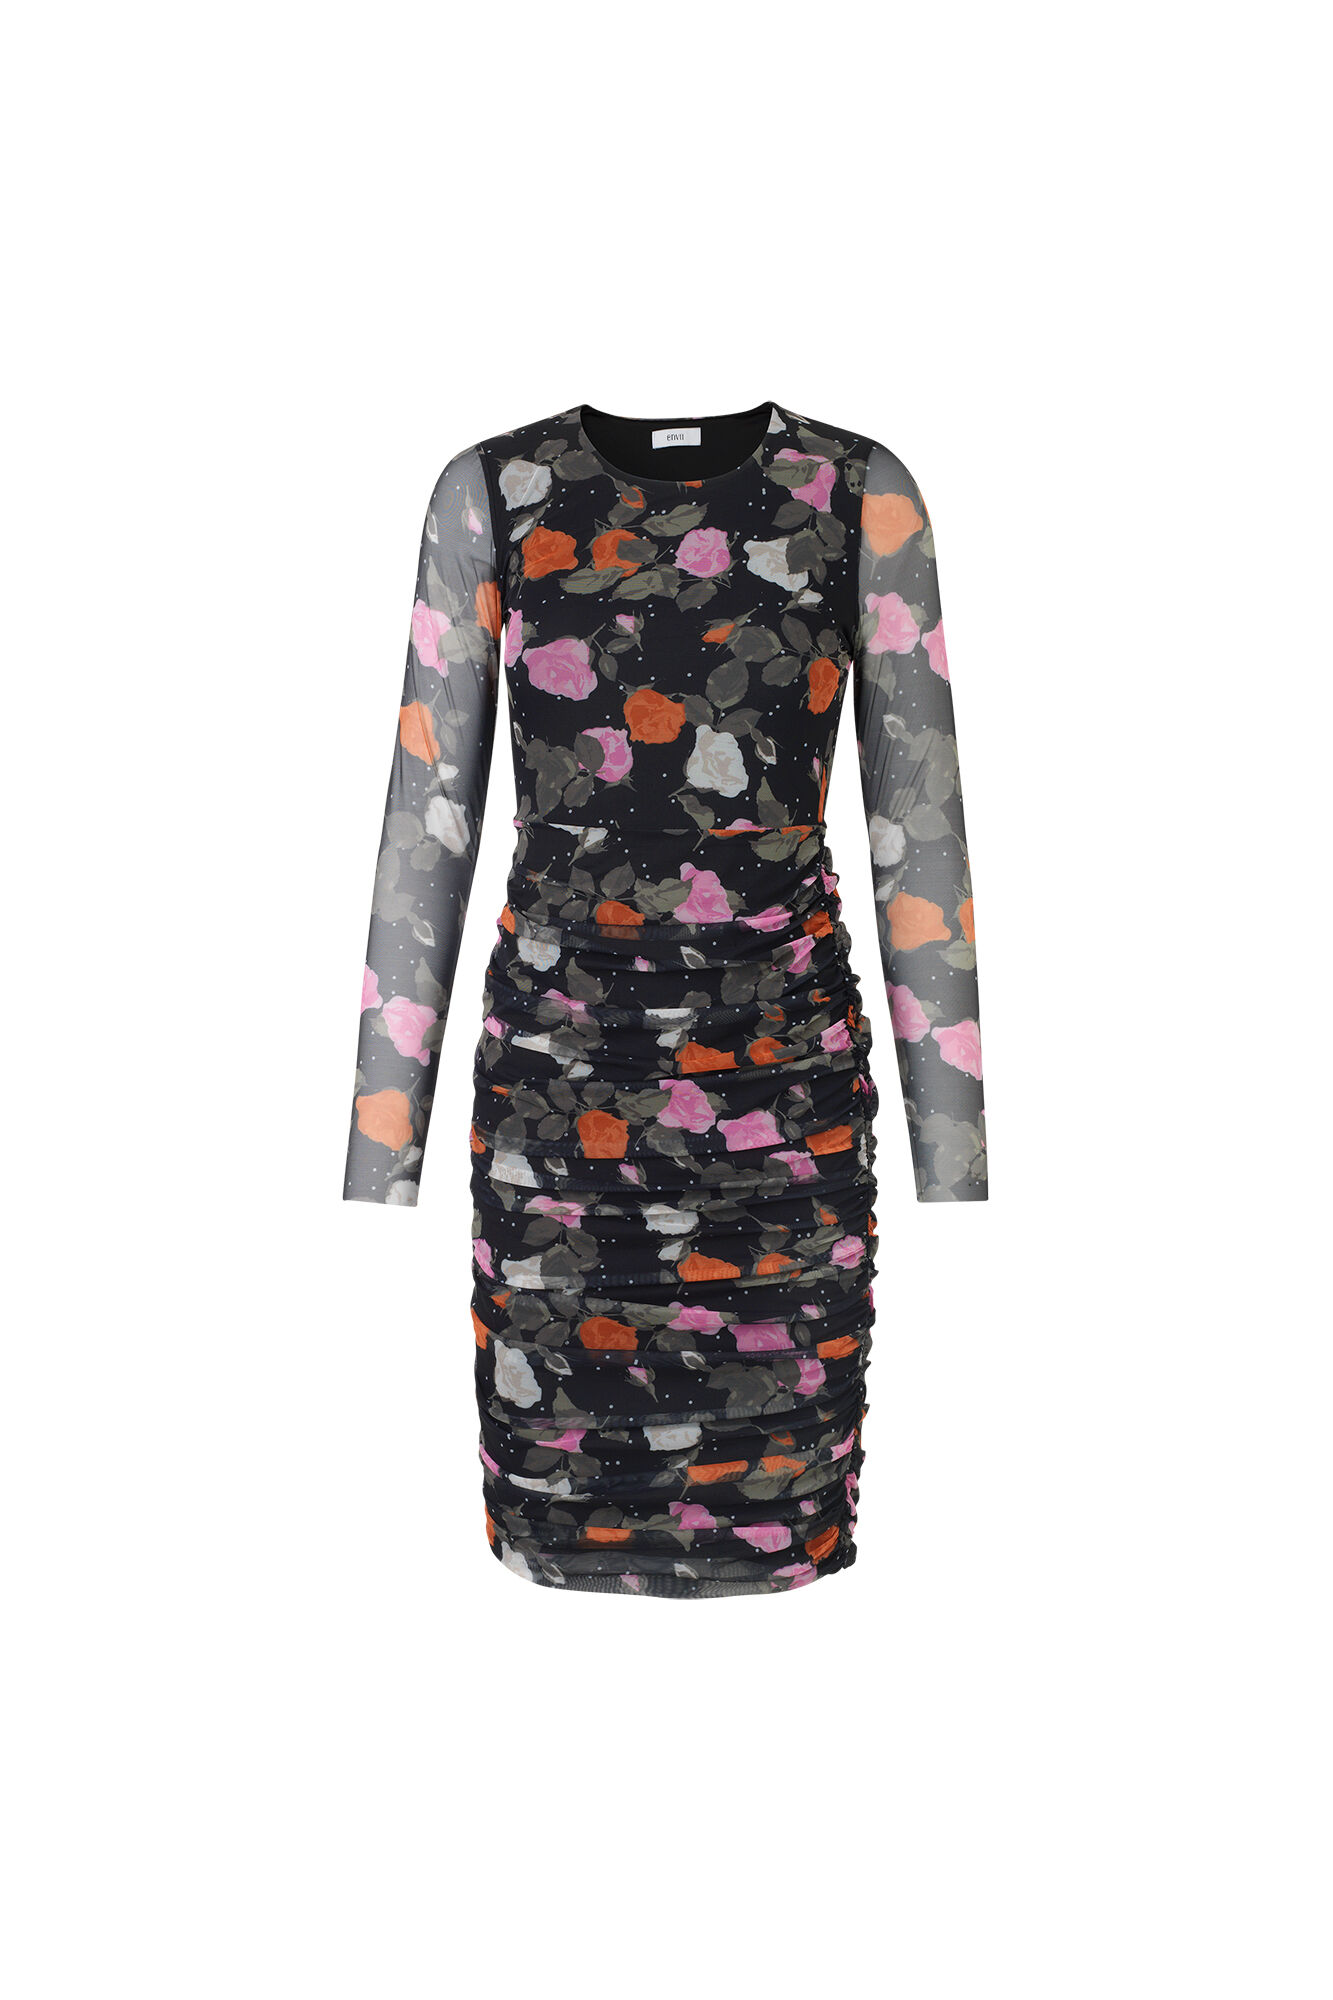 ENSATURN LS DRESS AOP 5937, ROSE DOT AOP